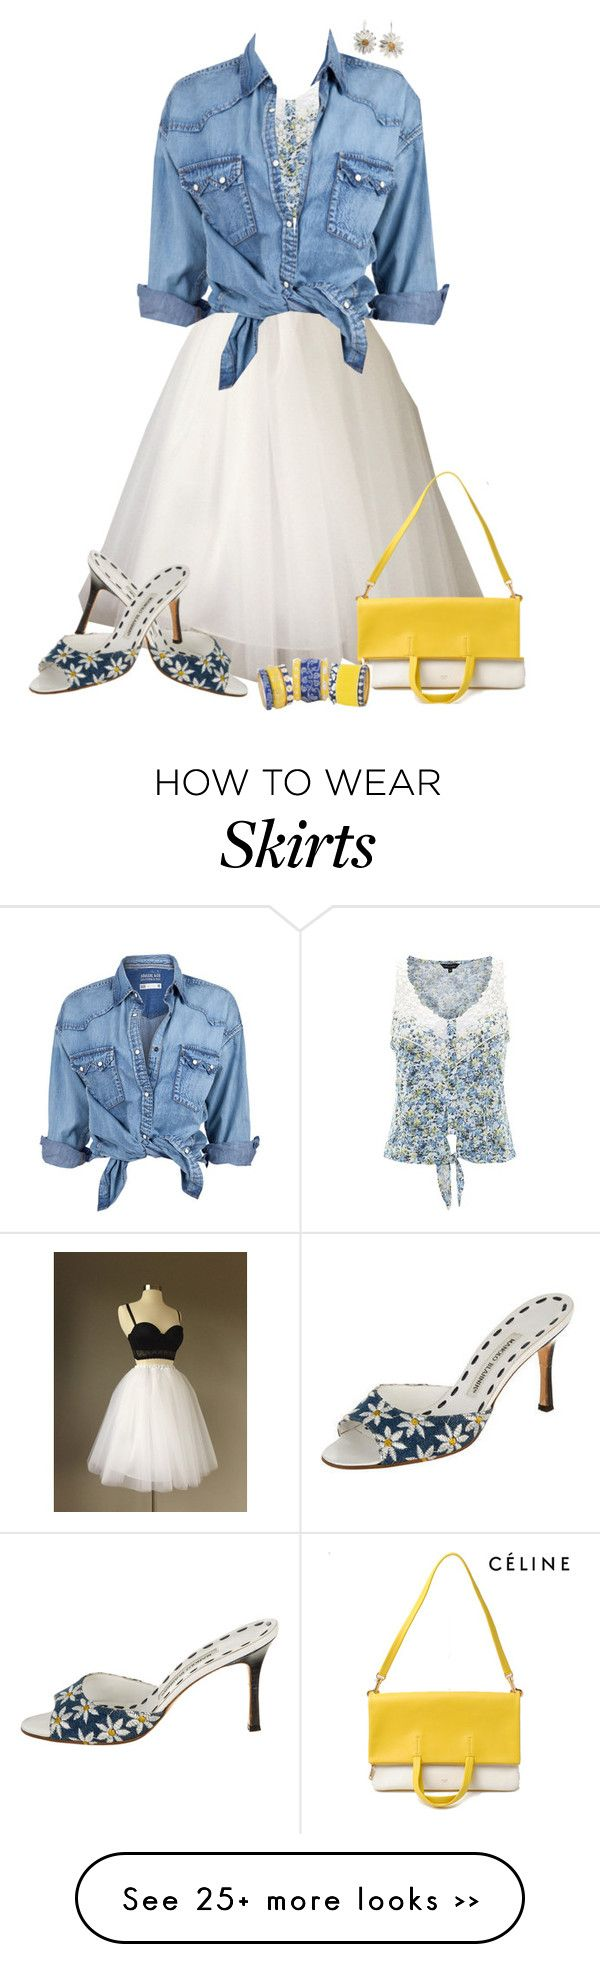 """Denim Shirt & White Tulle Skirt"" by dkelley-0711 on Polyvore"